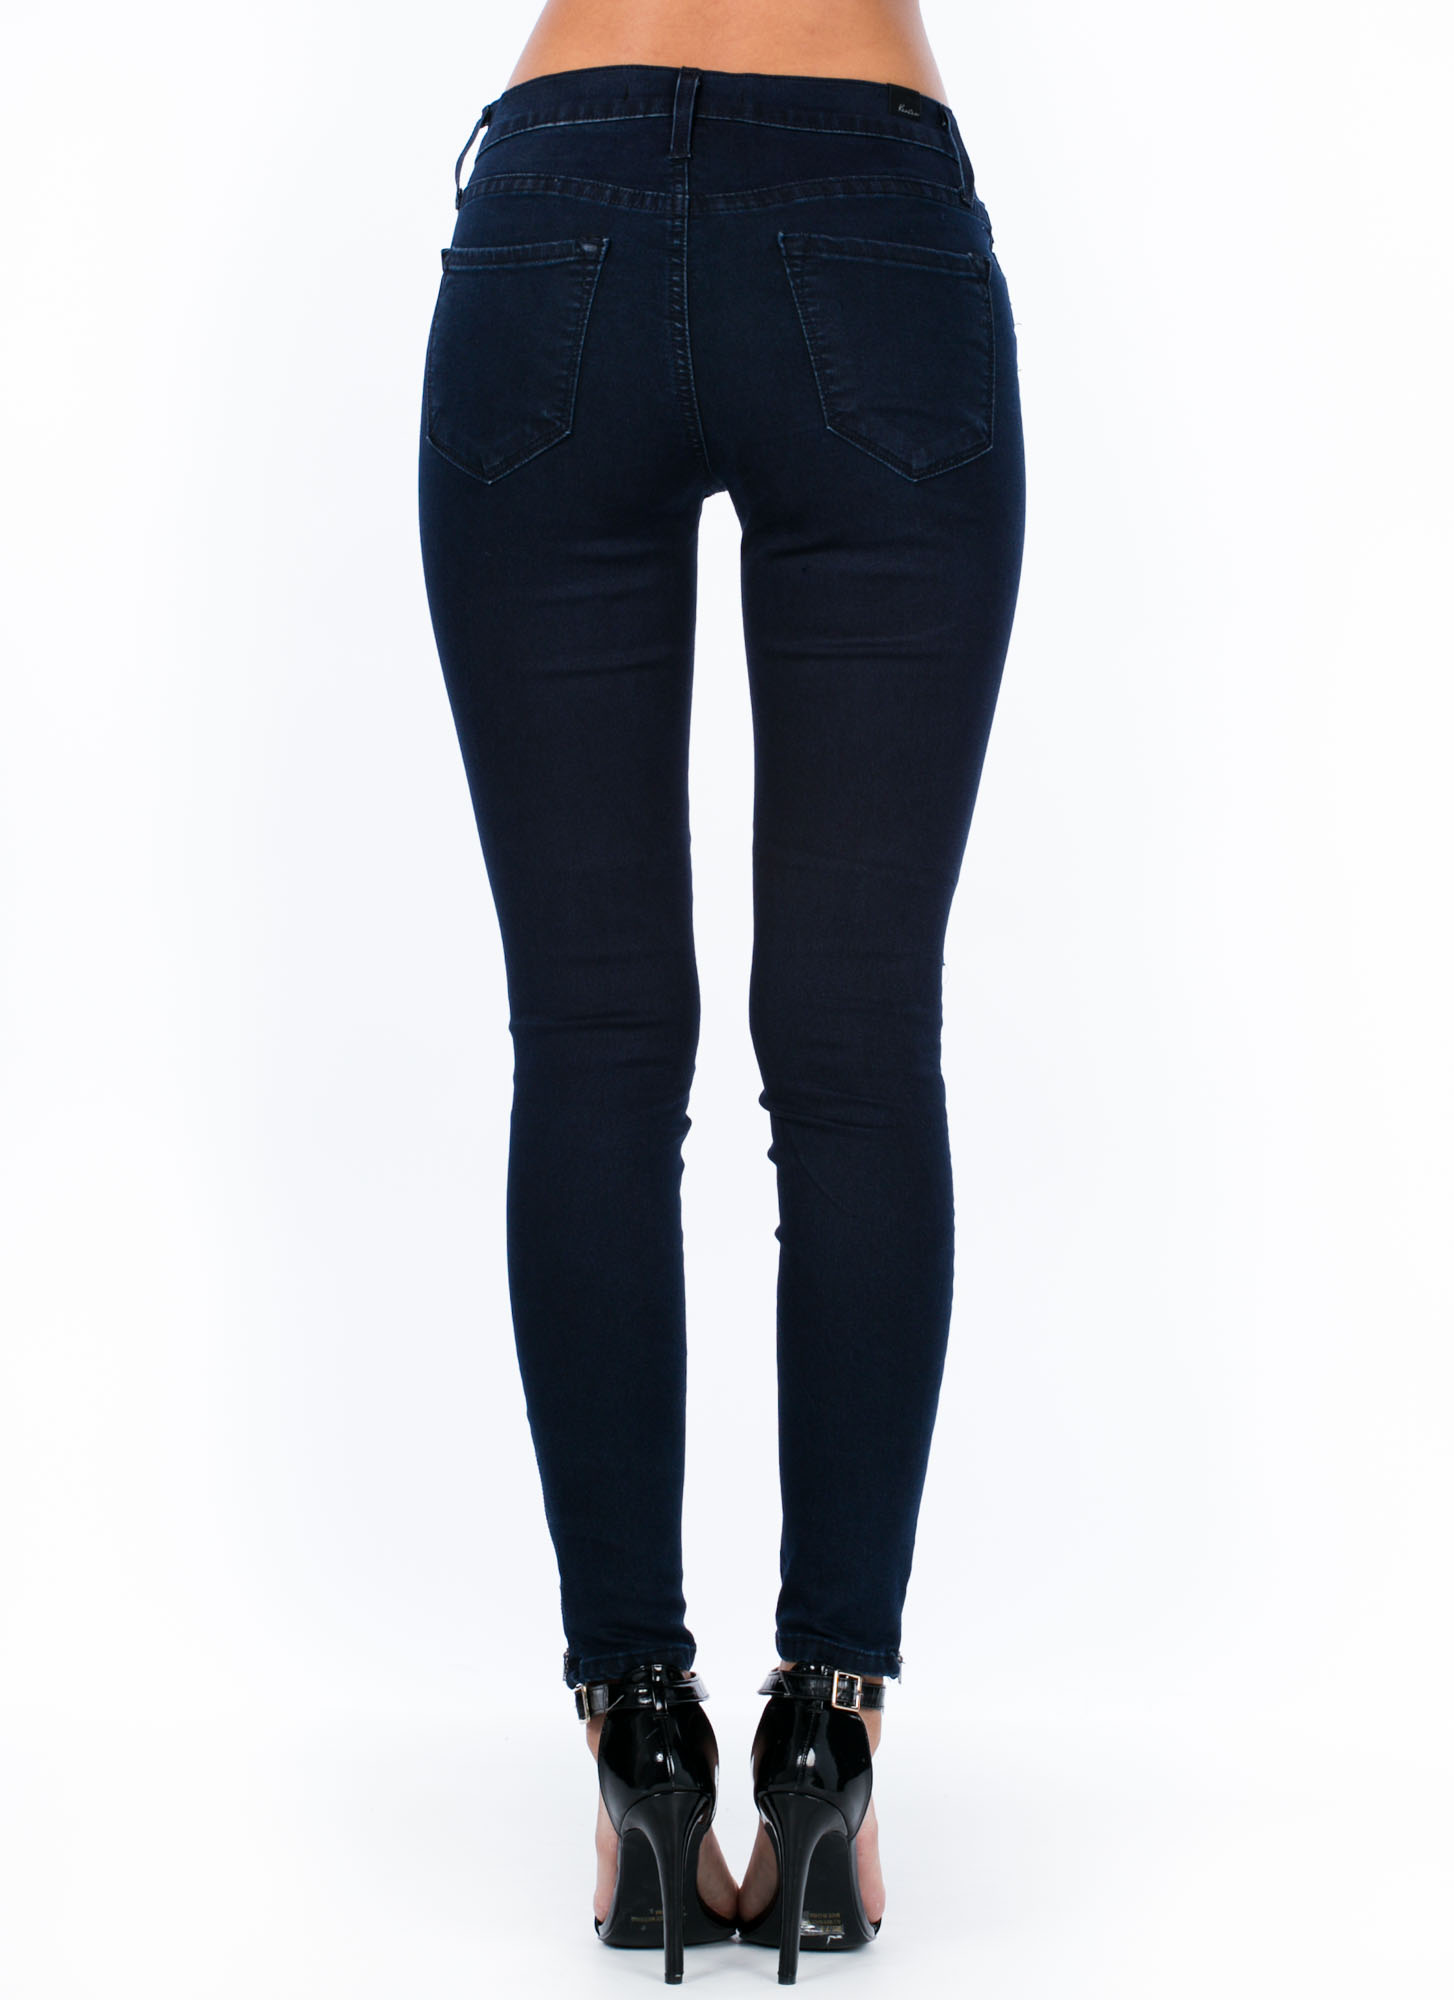 Moto Stitched Zippered Jeggings DKBLUE